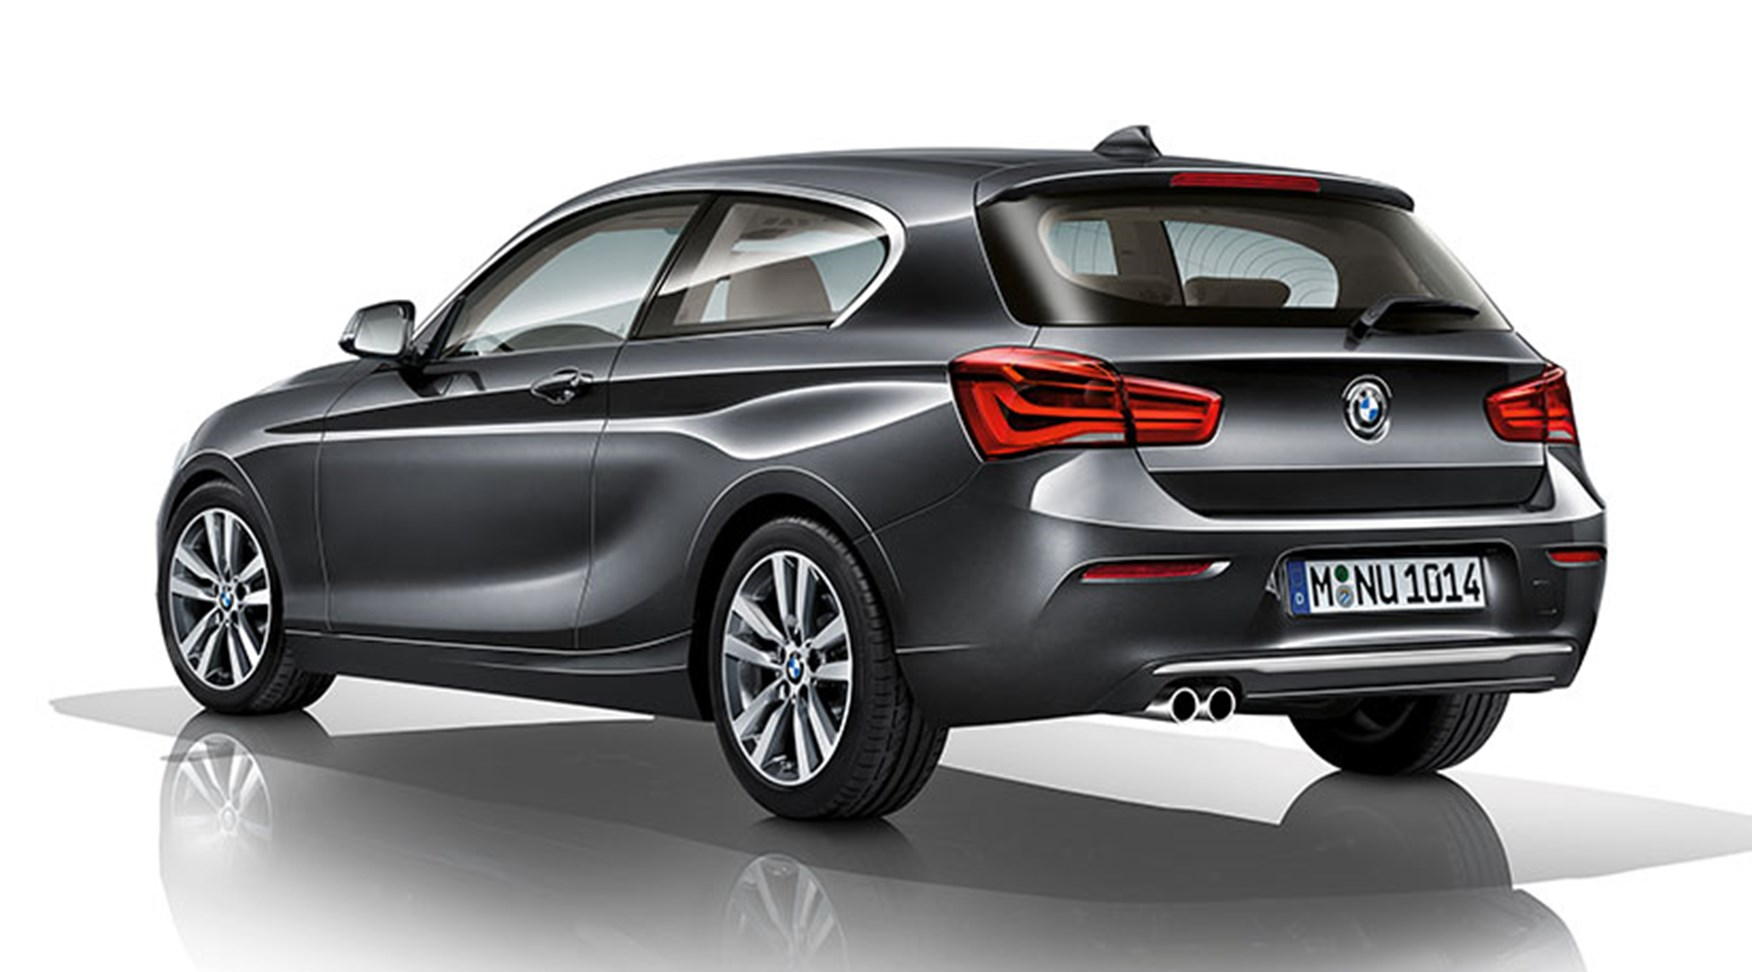 Bmw 1 Series 2015 Facelift Is Here With Prettier Face By